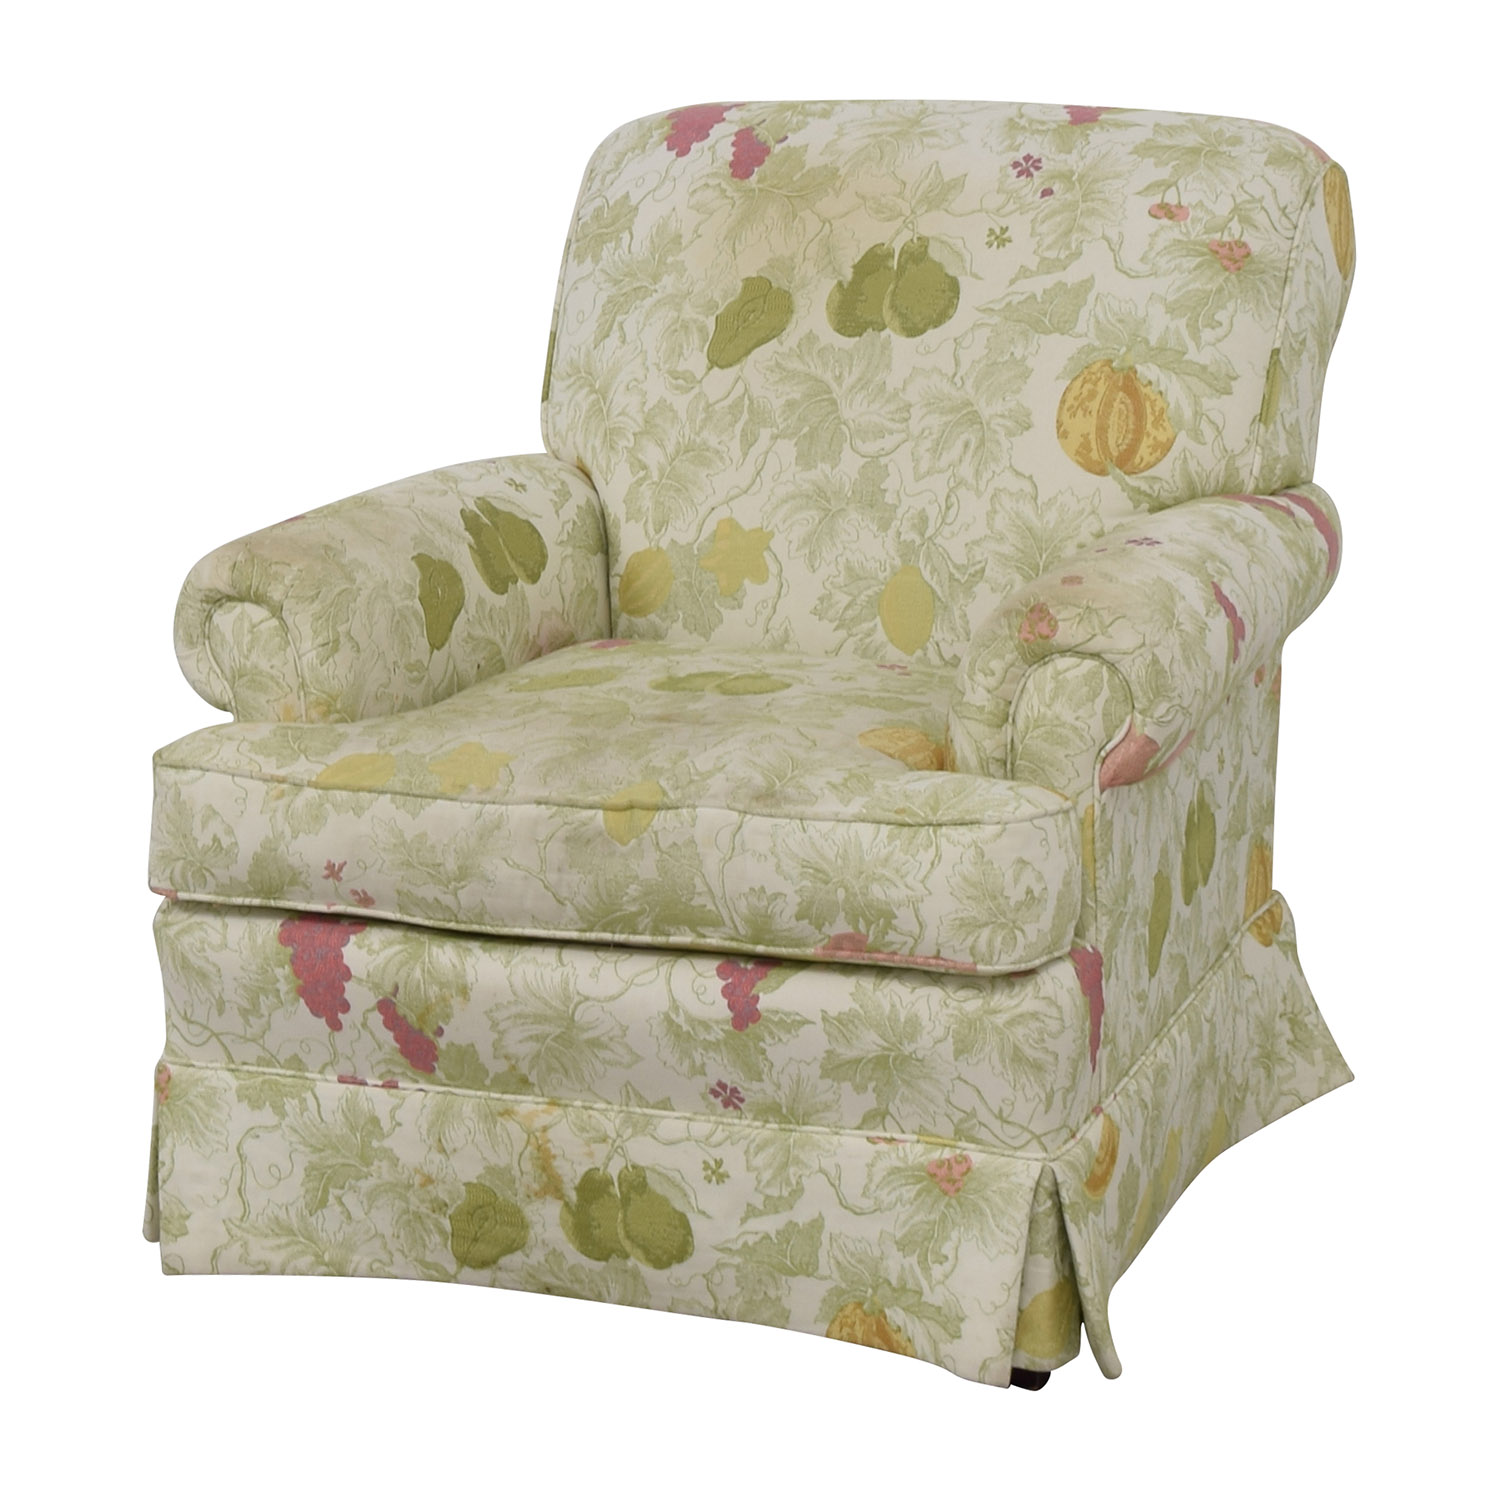 Sherrill Sherrill Fruit Patterned Accent Chair white/floral pattern